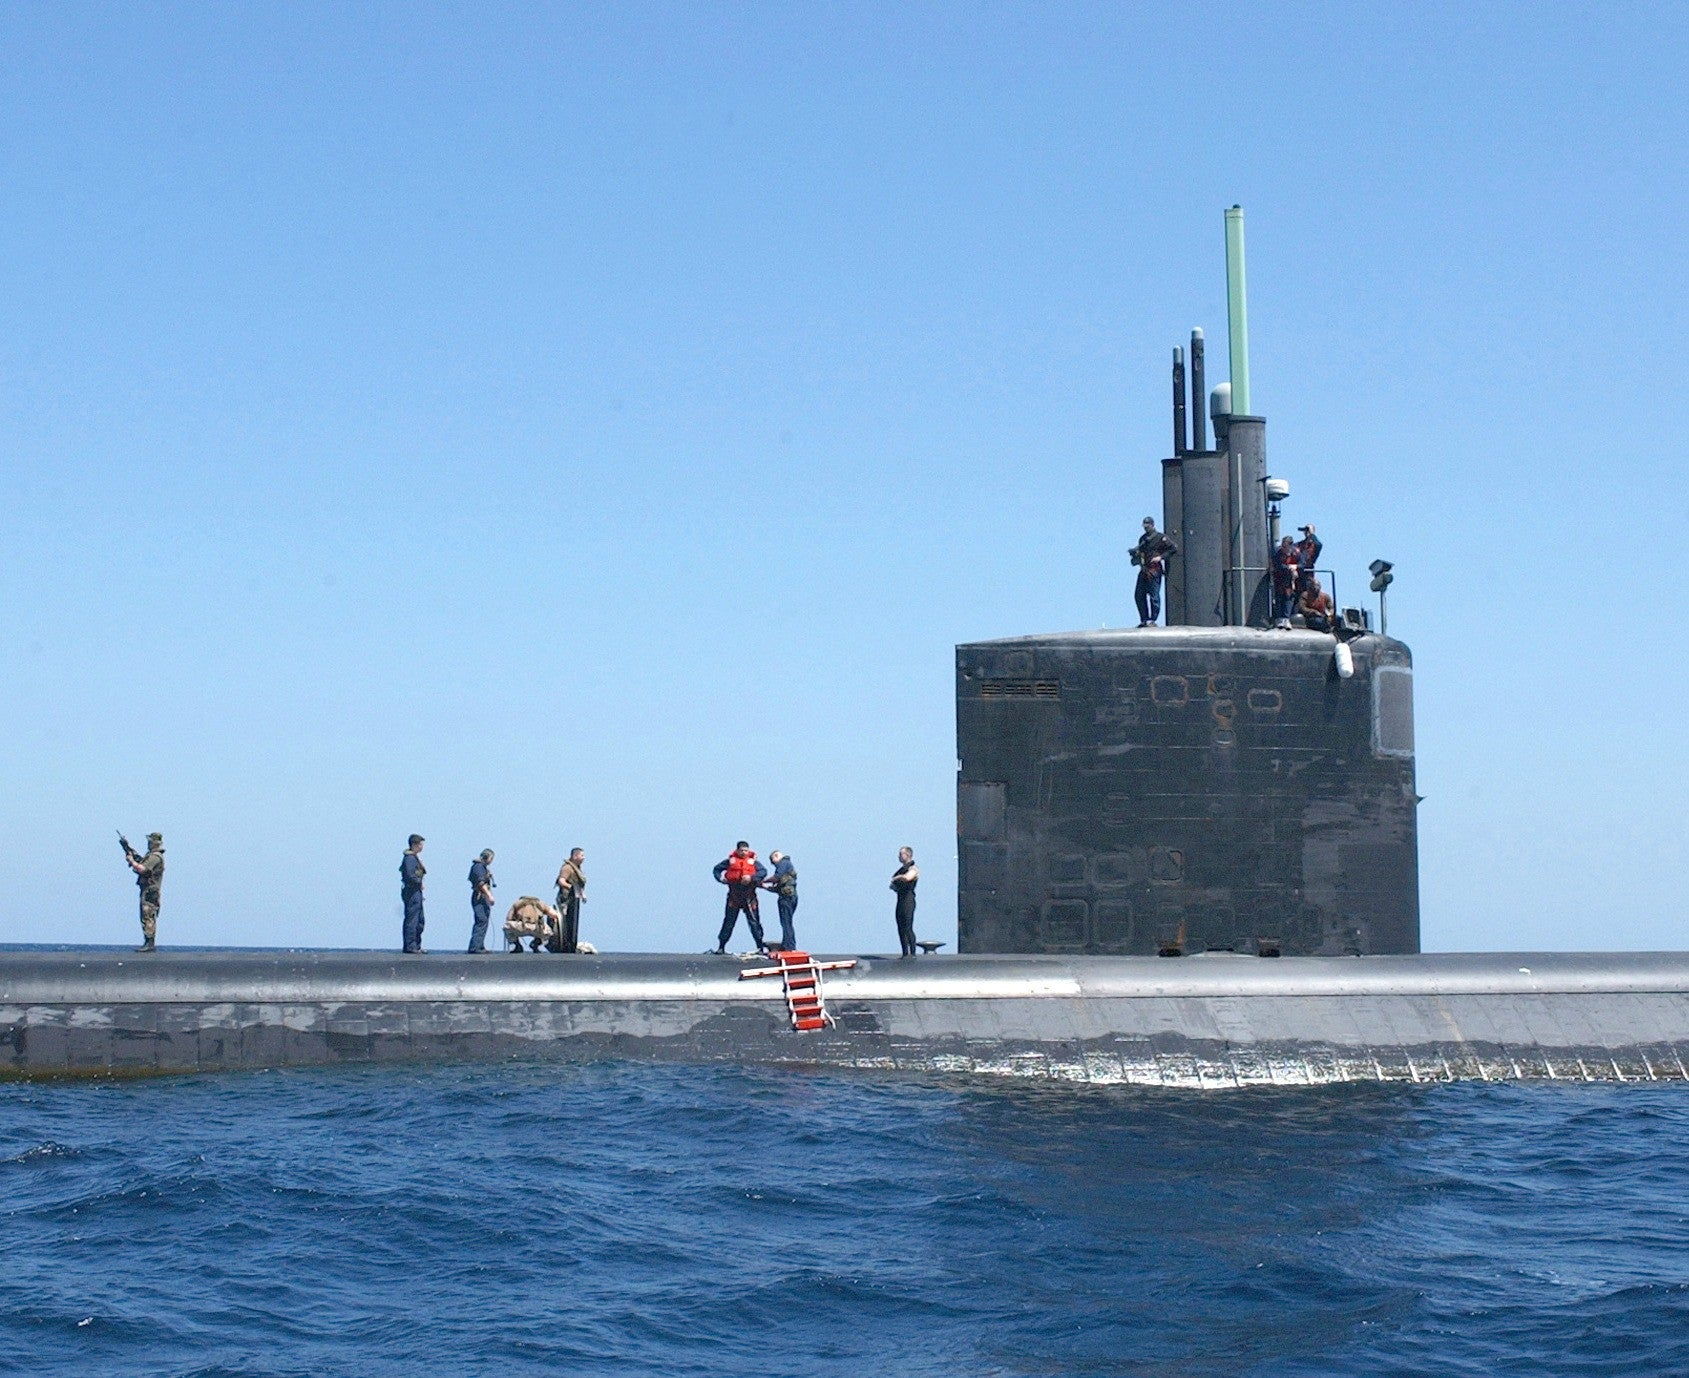 "USS Toledo SSN-769 Central Command Area of Responsibility March 27, 2003 - 8 x 10"" Photograph"